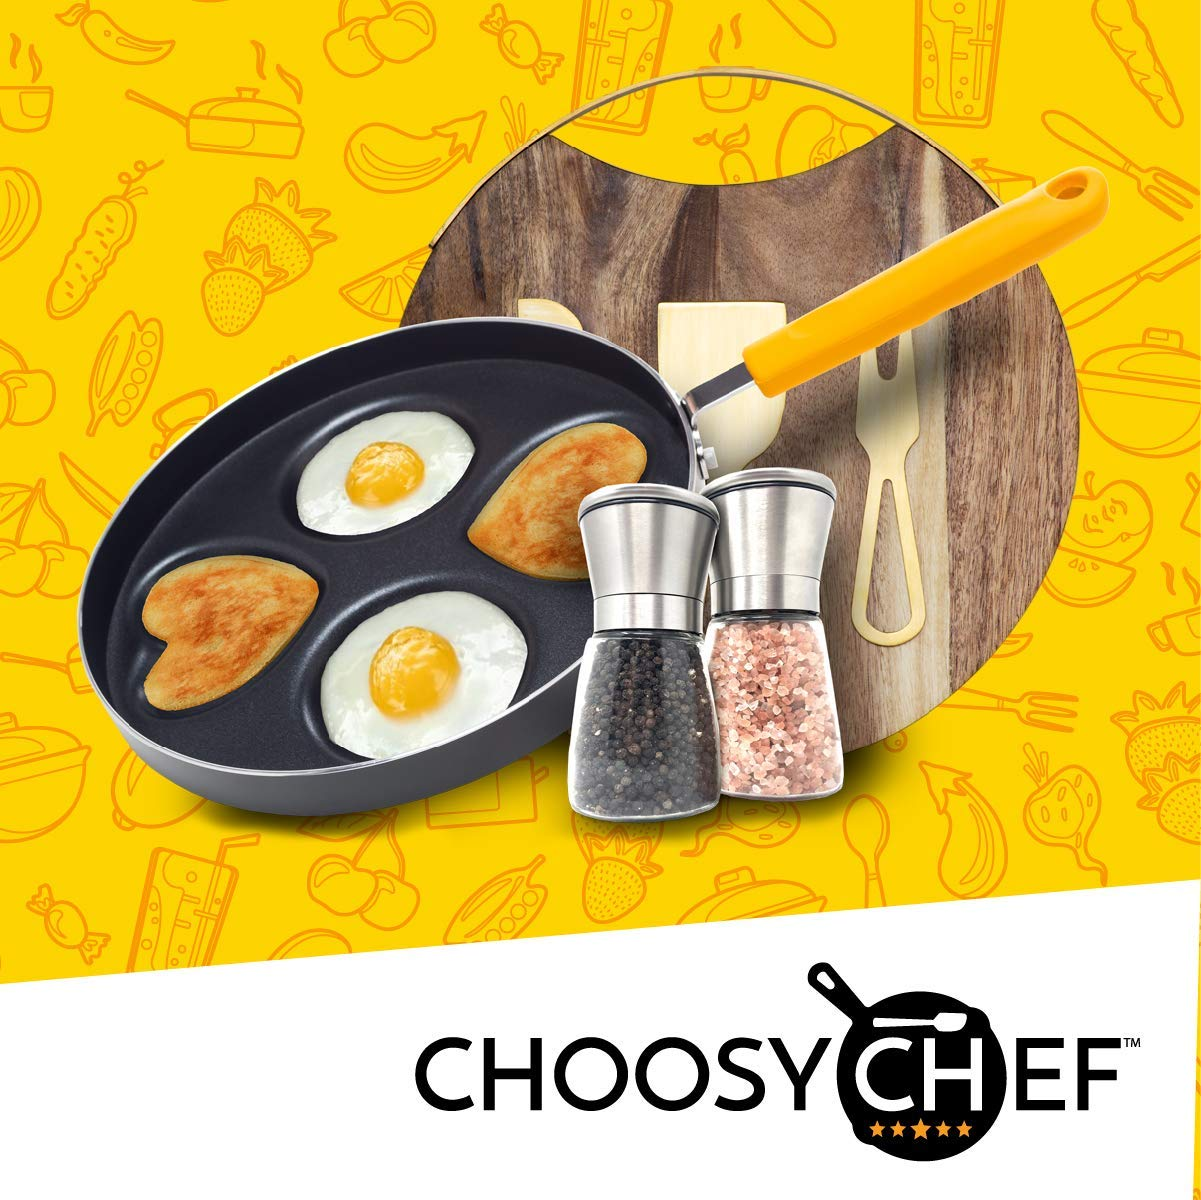 Happy Egg Pan by Choosy Chef - Nonstick 4-Cup Frying Pan, Spatula & Happy Egg Recipe Book Included by Choosy Chef (Image #5)